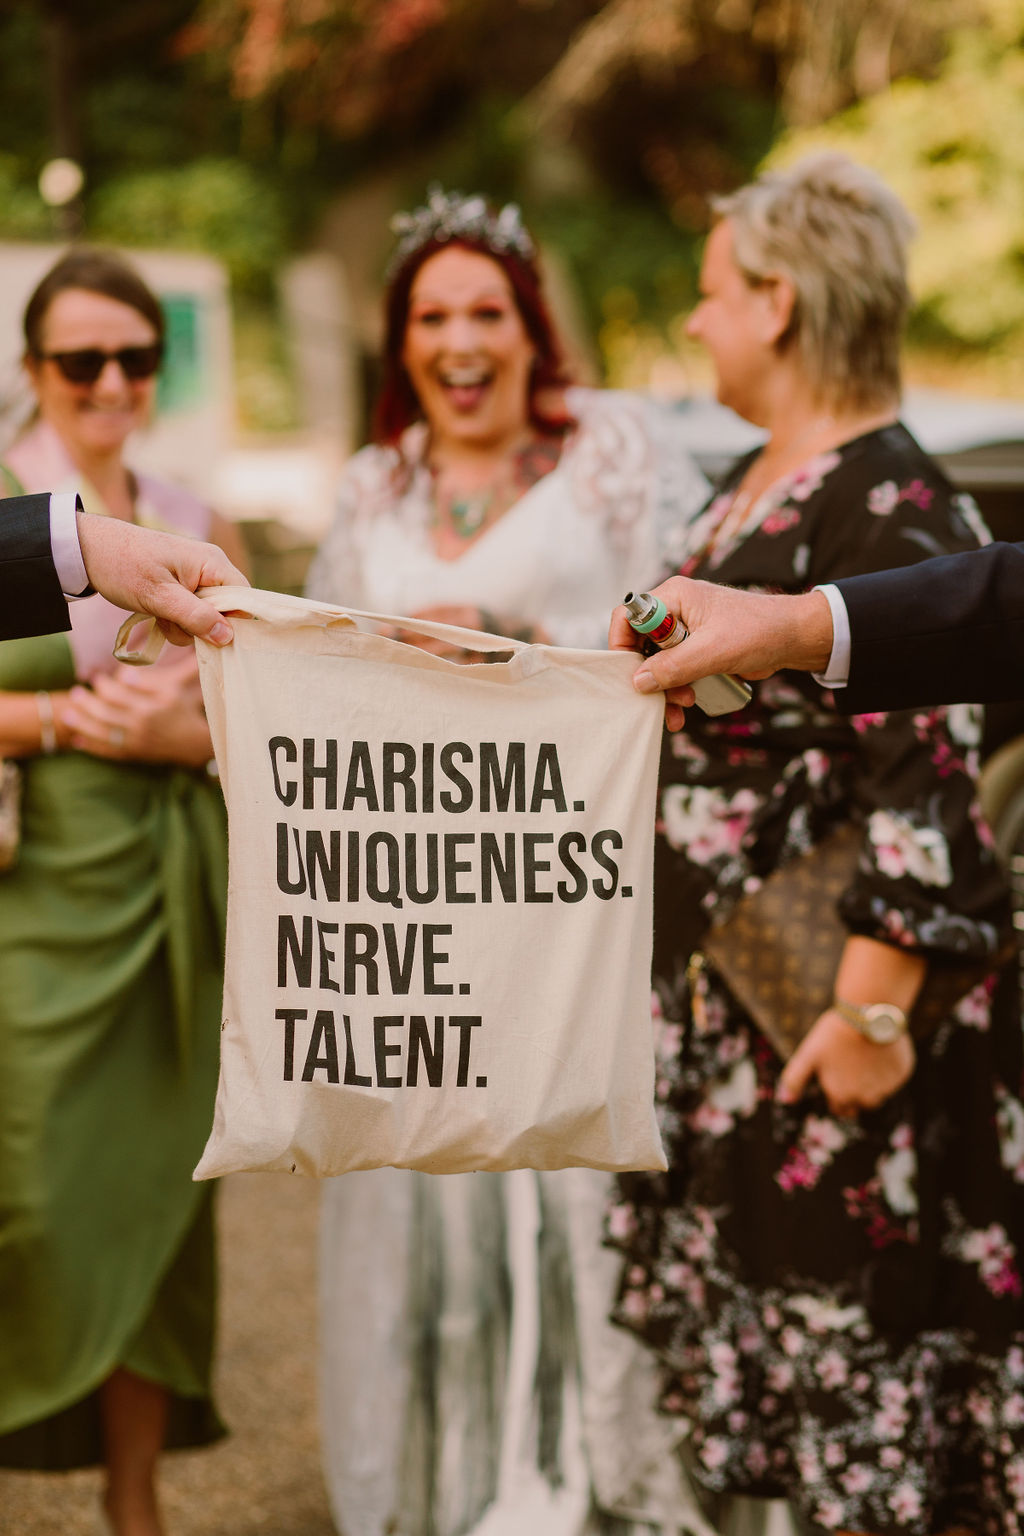 charisma uniqueness nerve and talent tote bag - drag race tote bag at wedding